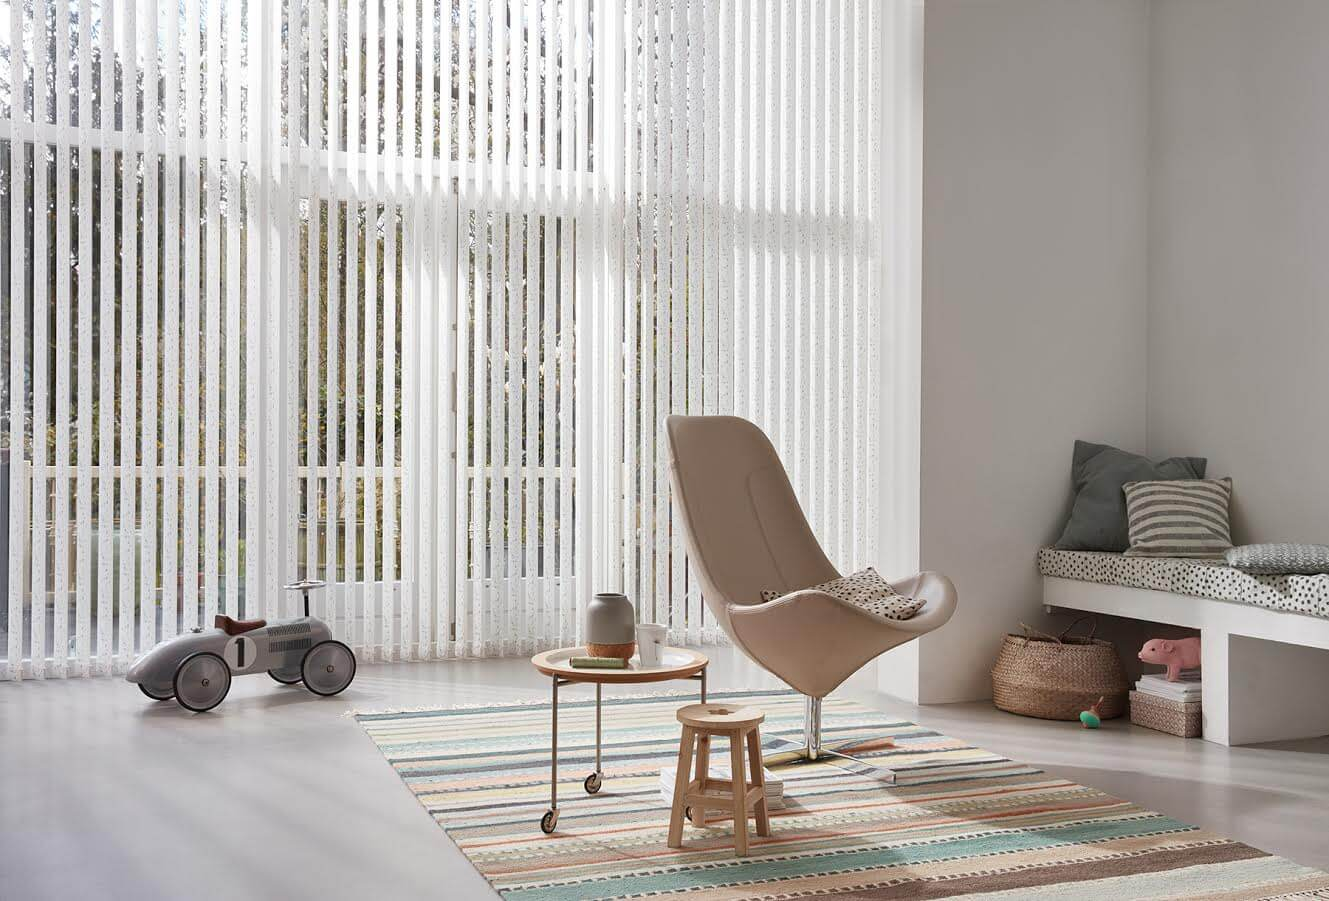 Vertical blinds: types, features, installation, and care